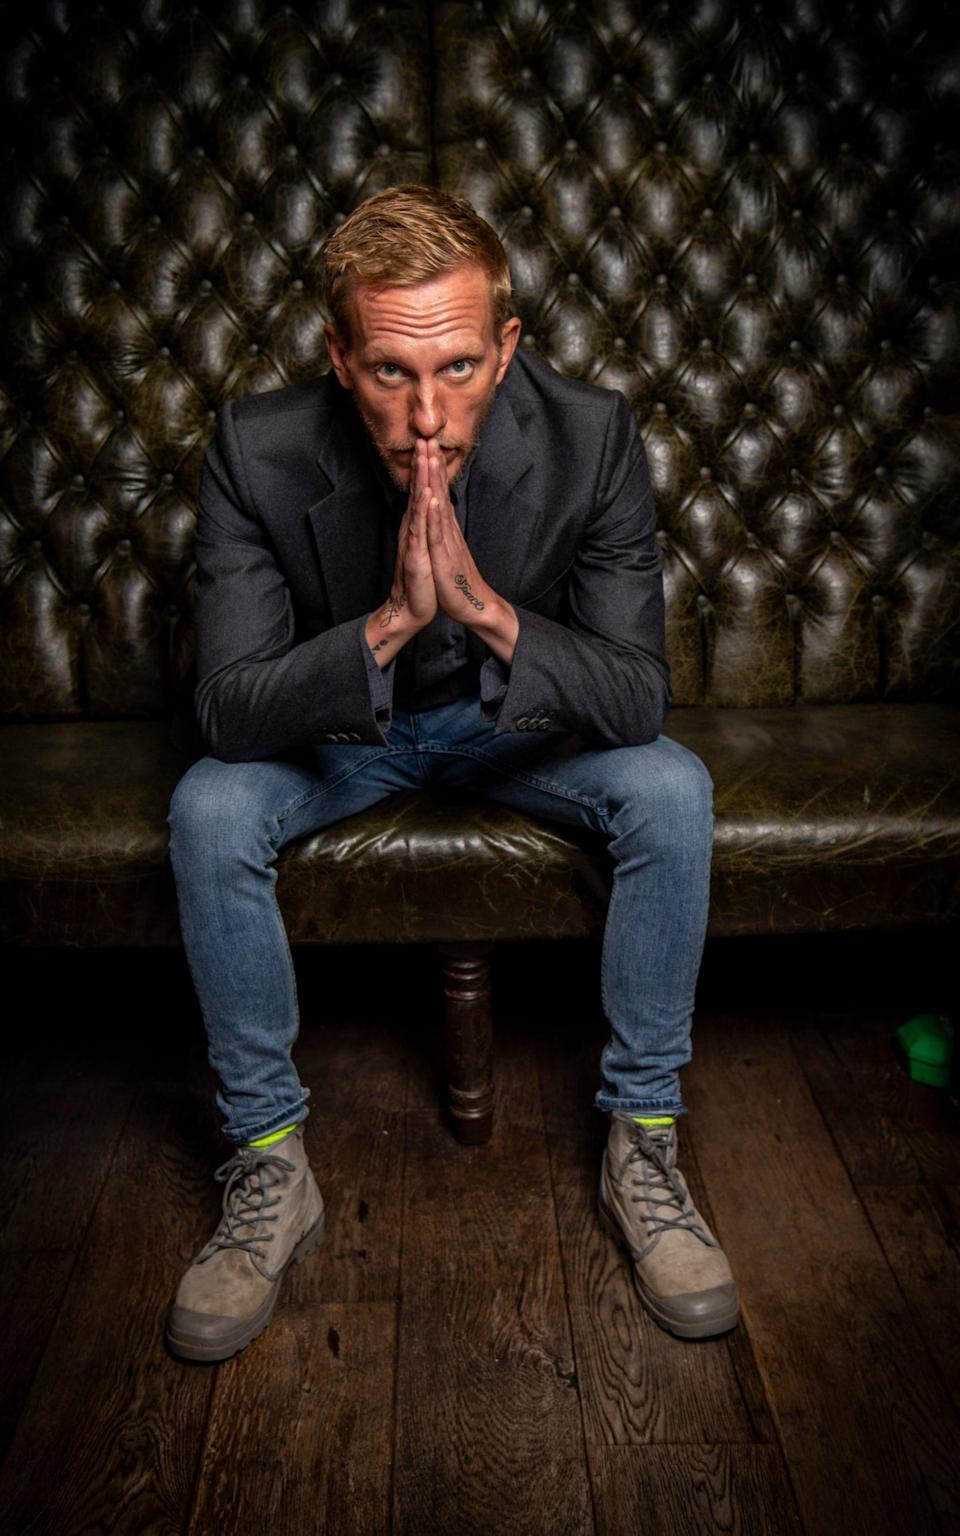 """Laurence Fox: """"Every time I think of Reclaim, often I do think of a reclamation yard and I rather like it"""" - Paul Grover for the Telegraph"""